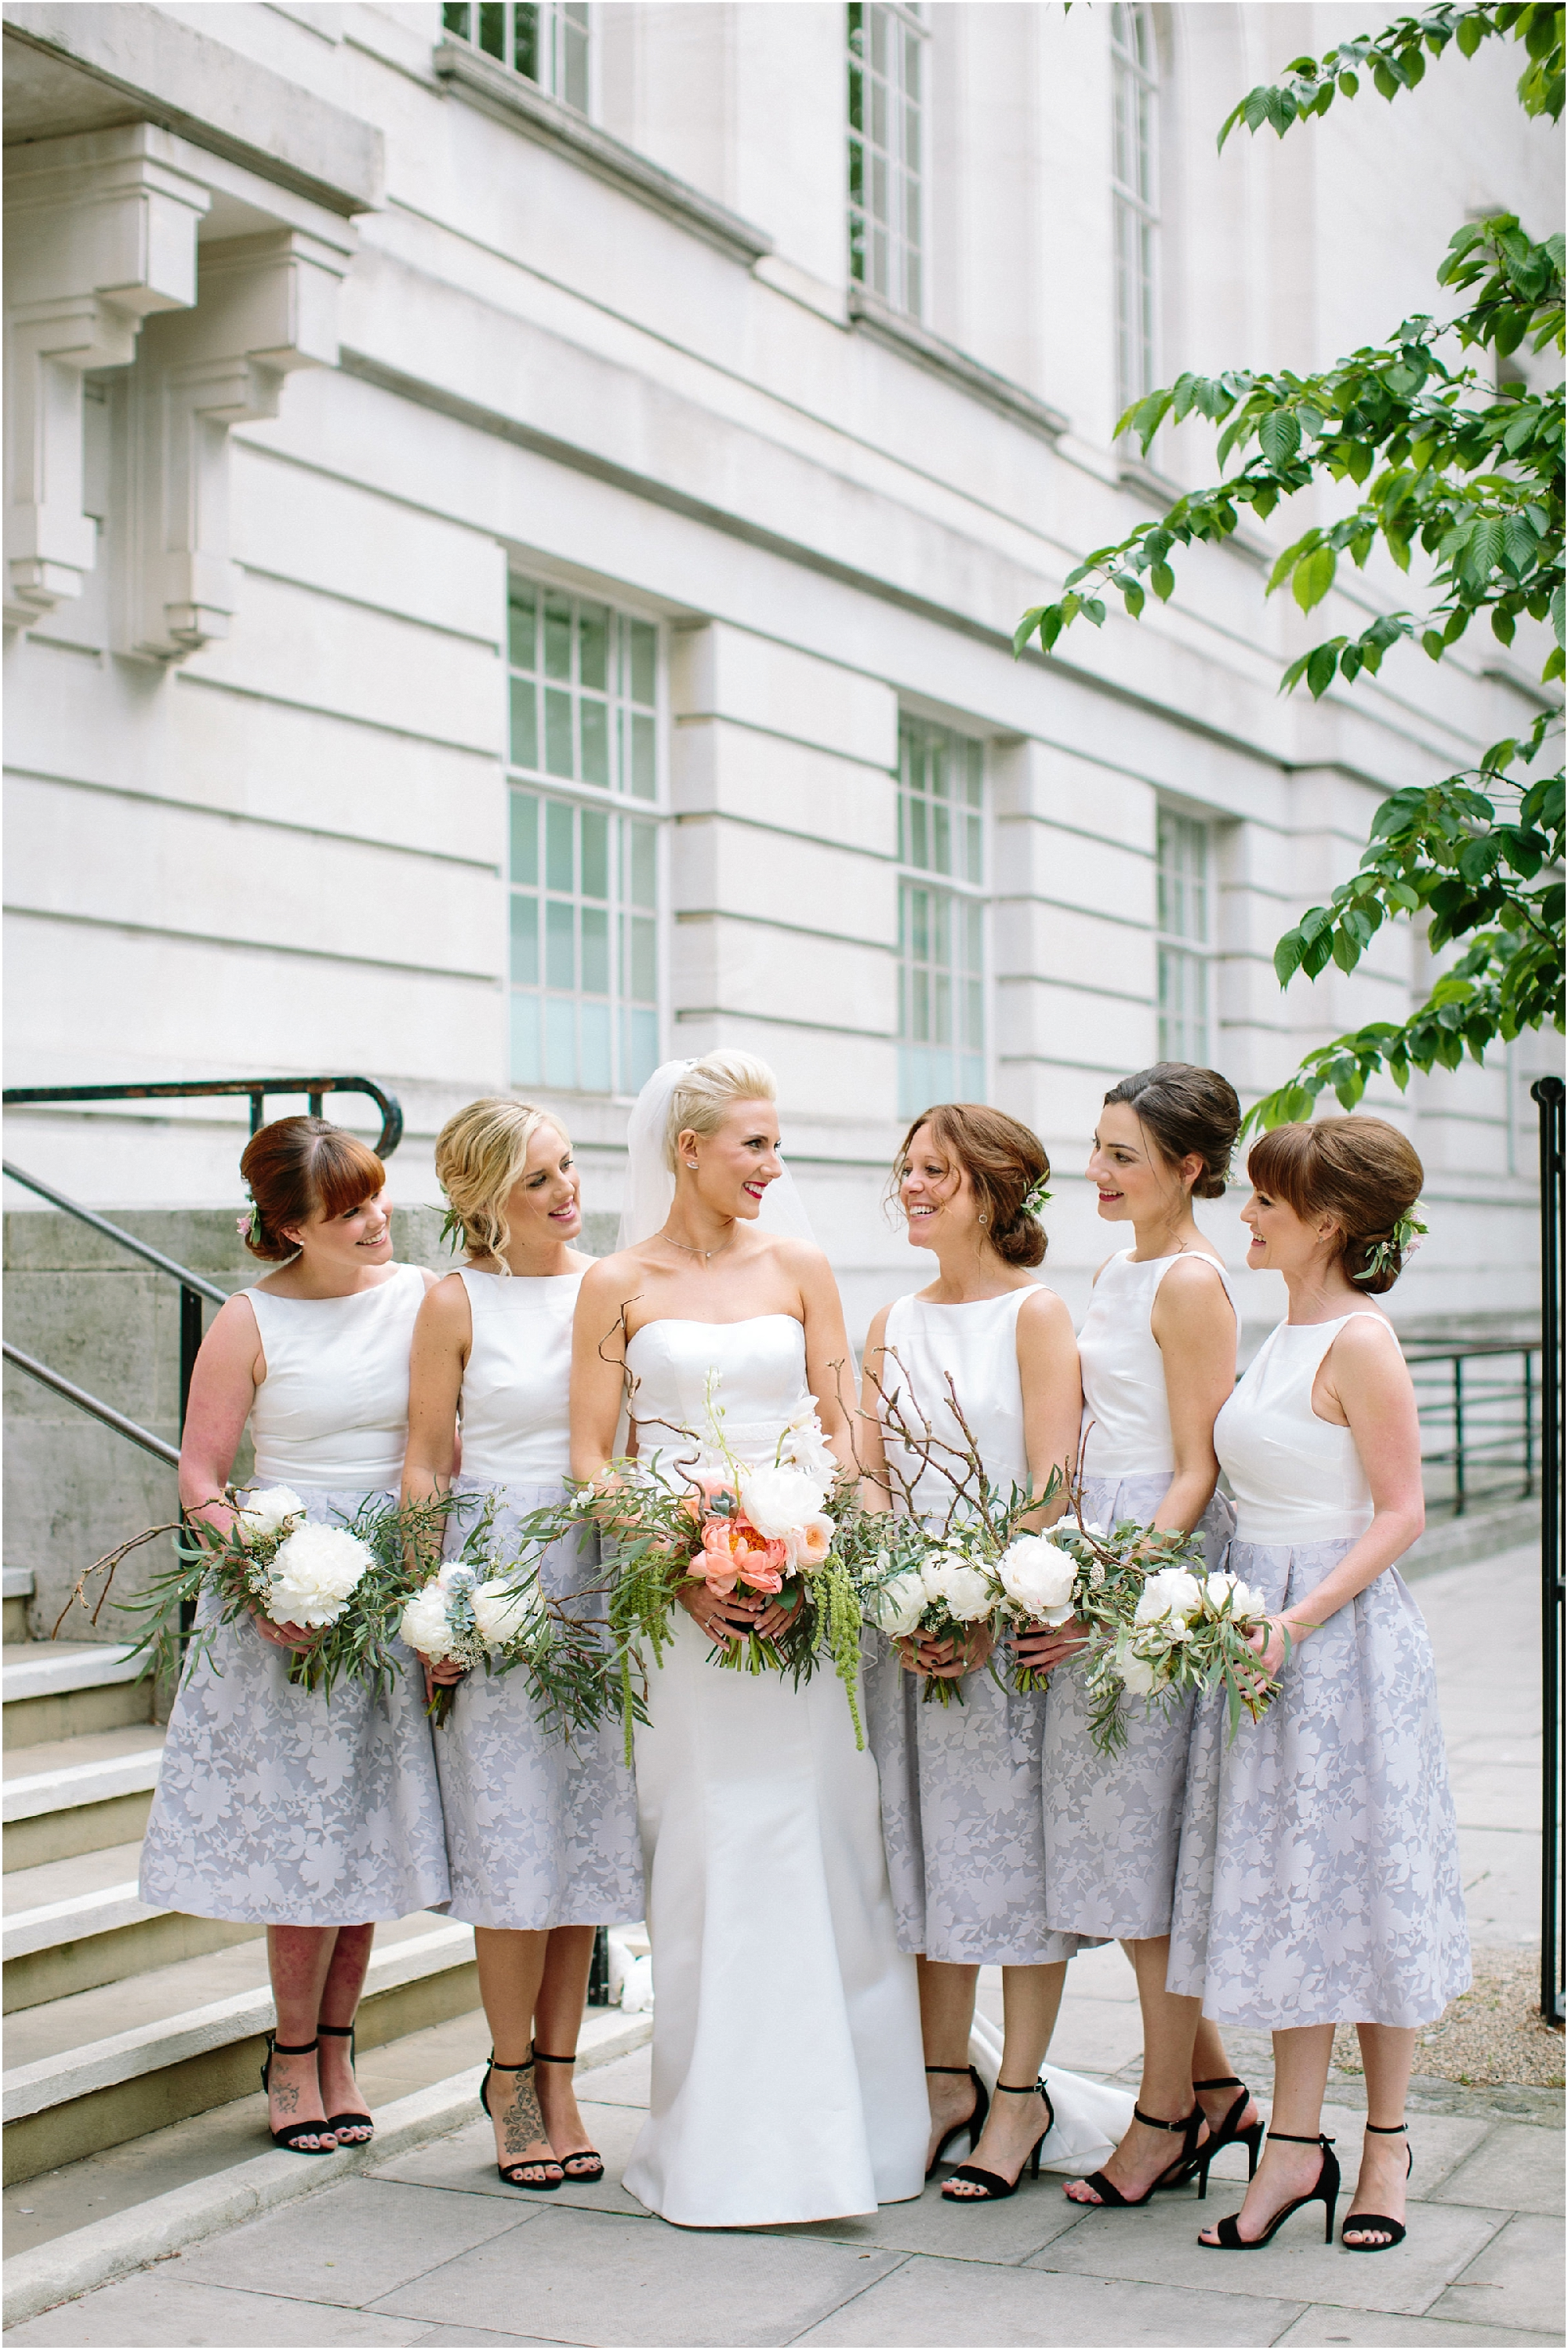 Bridesmaids in short dresses